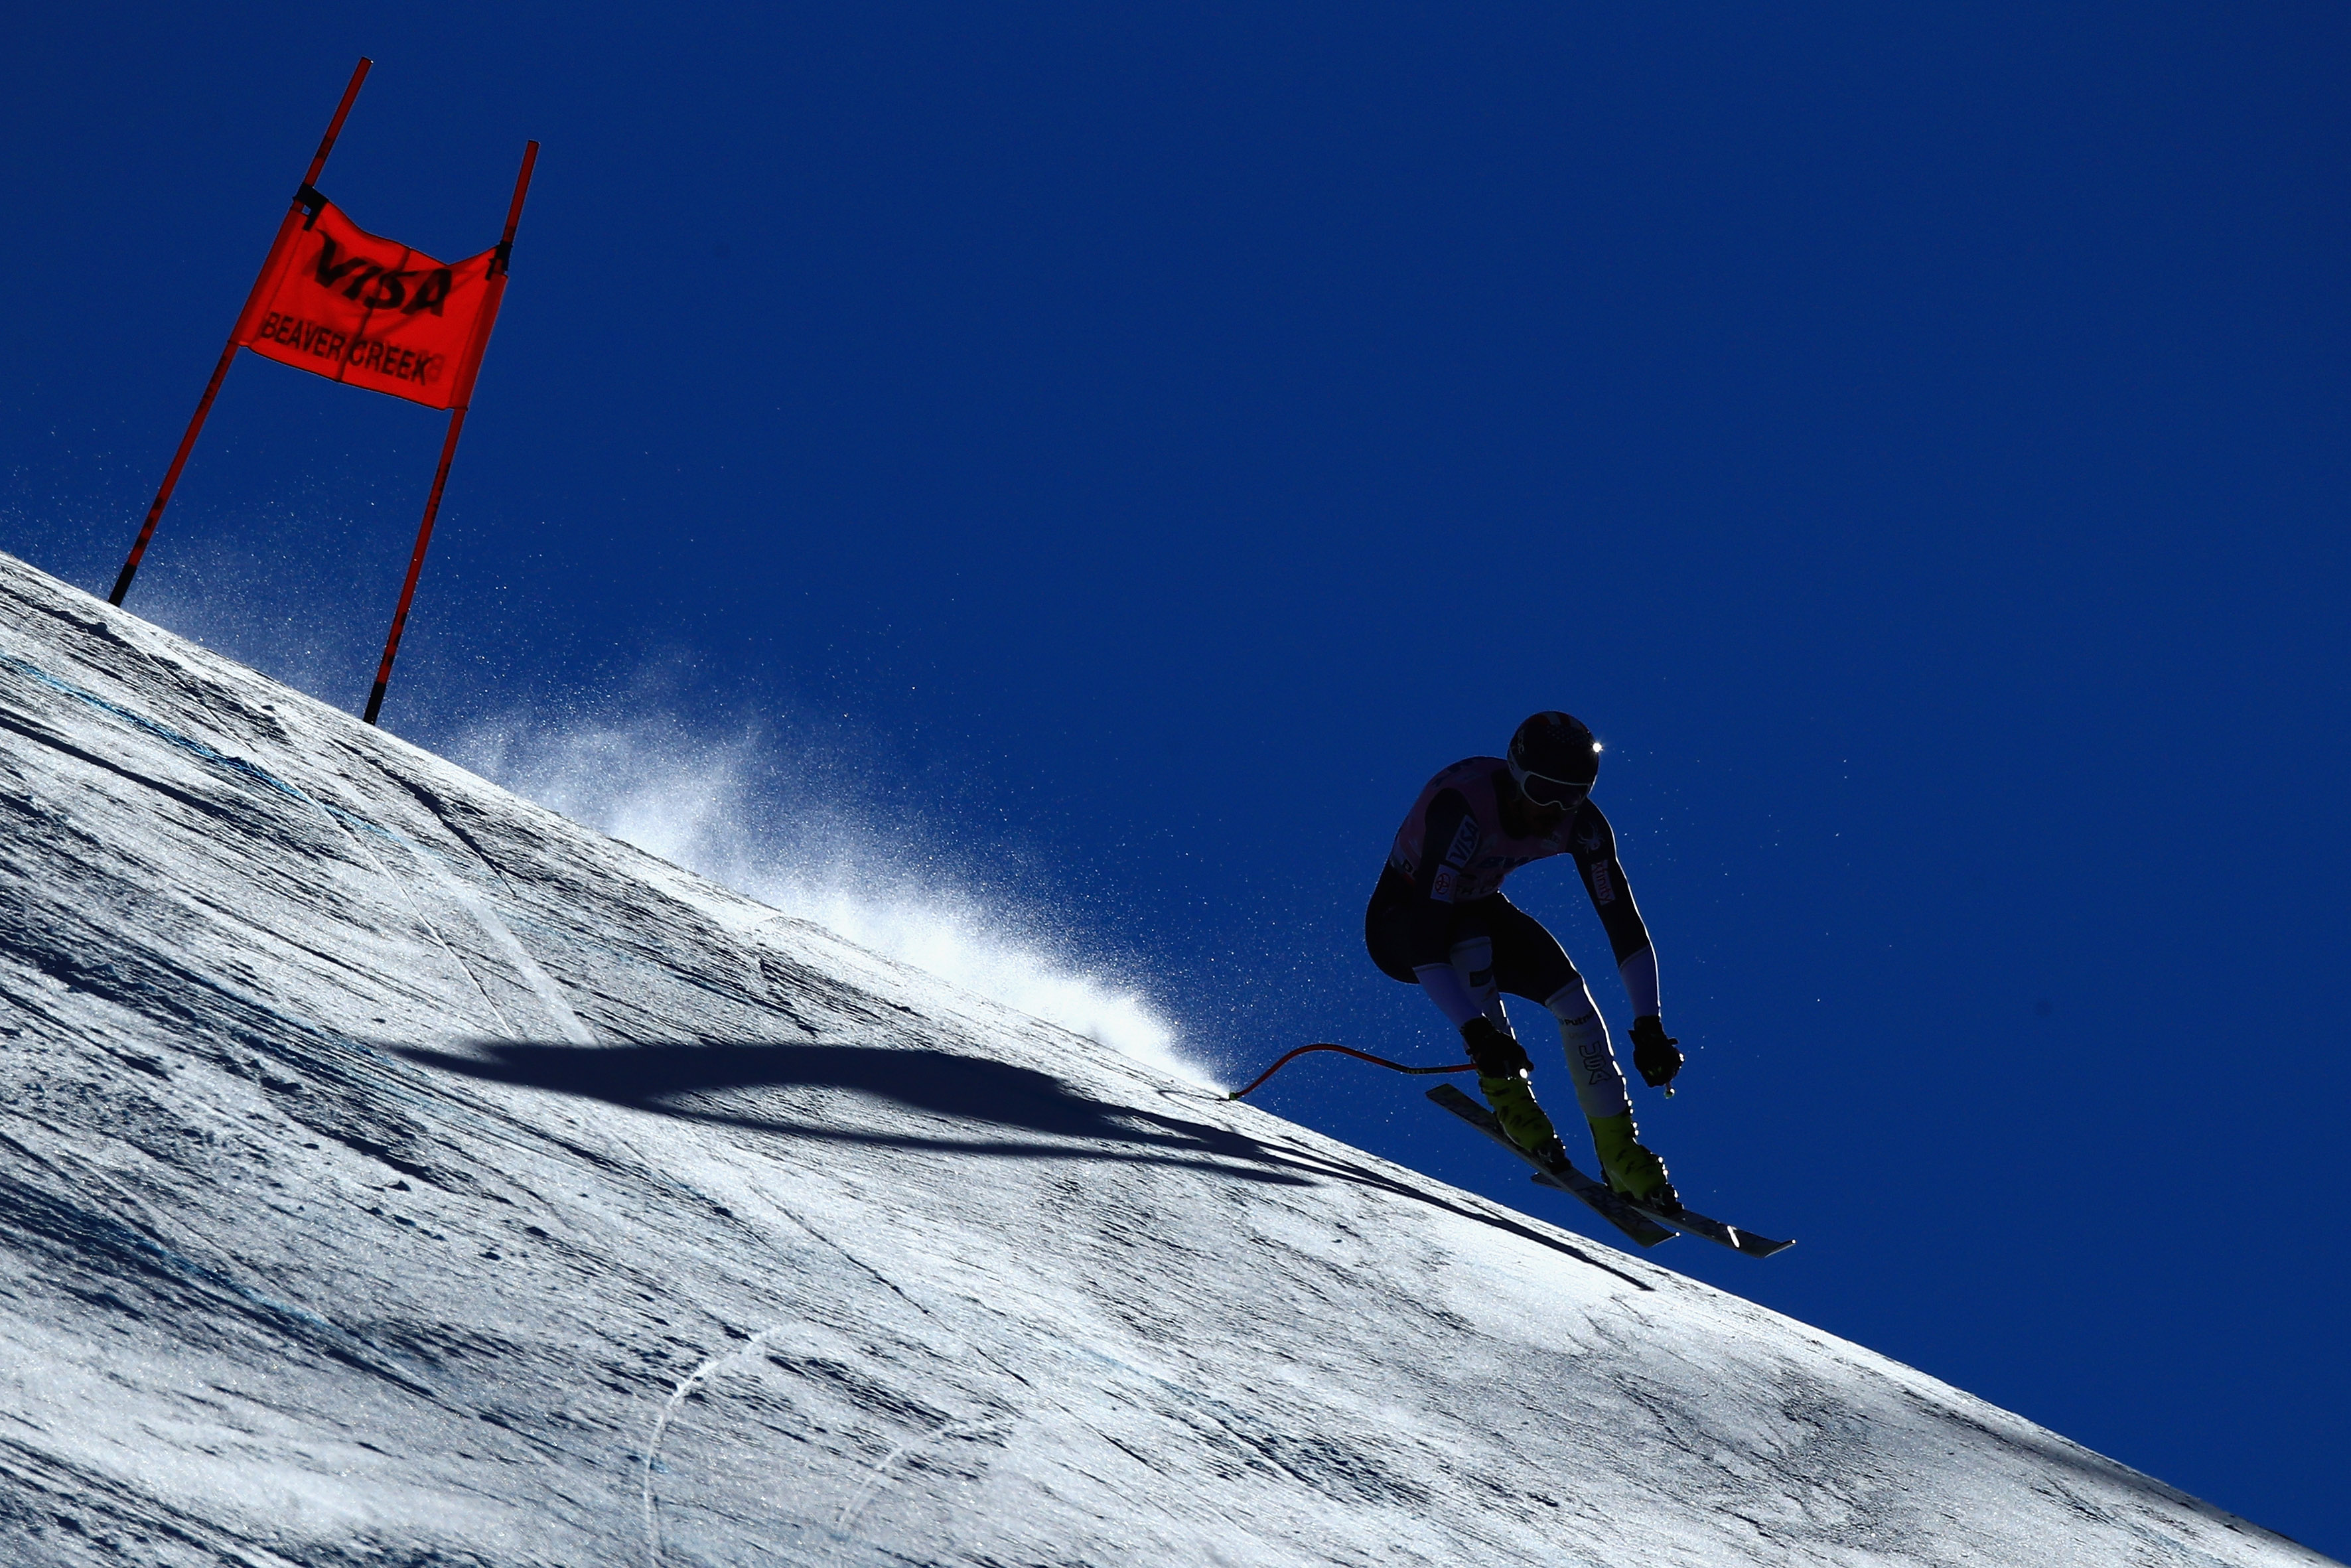 Bryce Bennett skis down the Birds of Prey course in Beaver Creek Saturday. (Getty Images - Ezra Shaw)